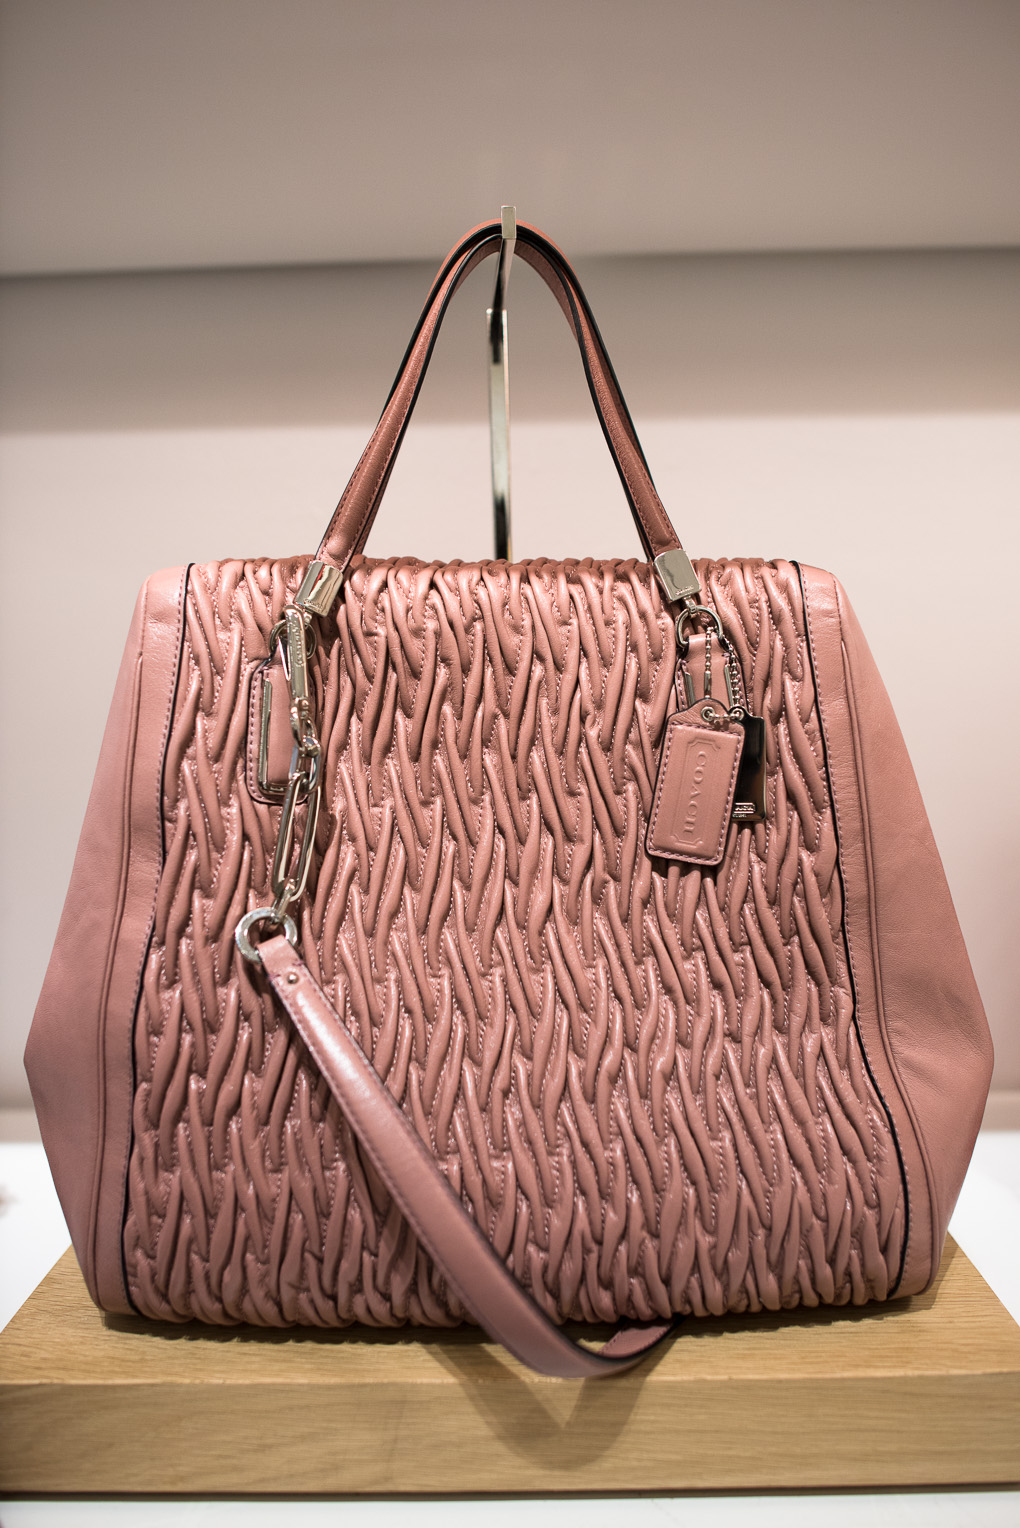 Coach Handbags 2013 Collection A preview of coach pre-fall 2013 ...